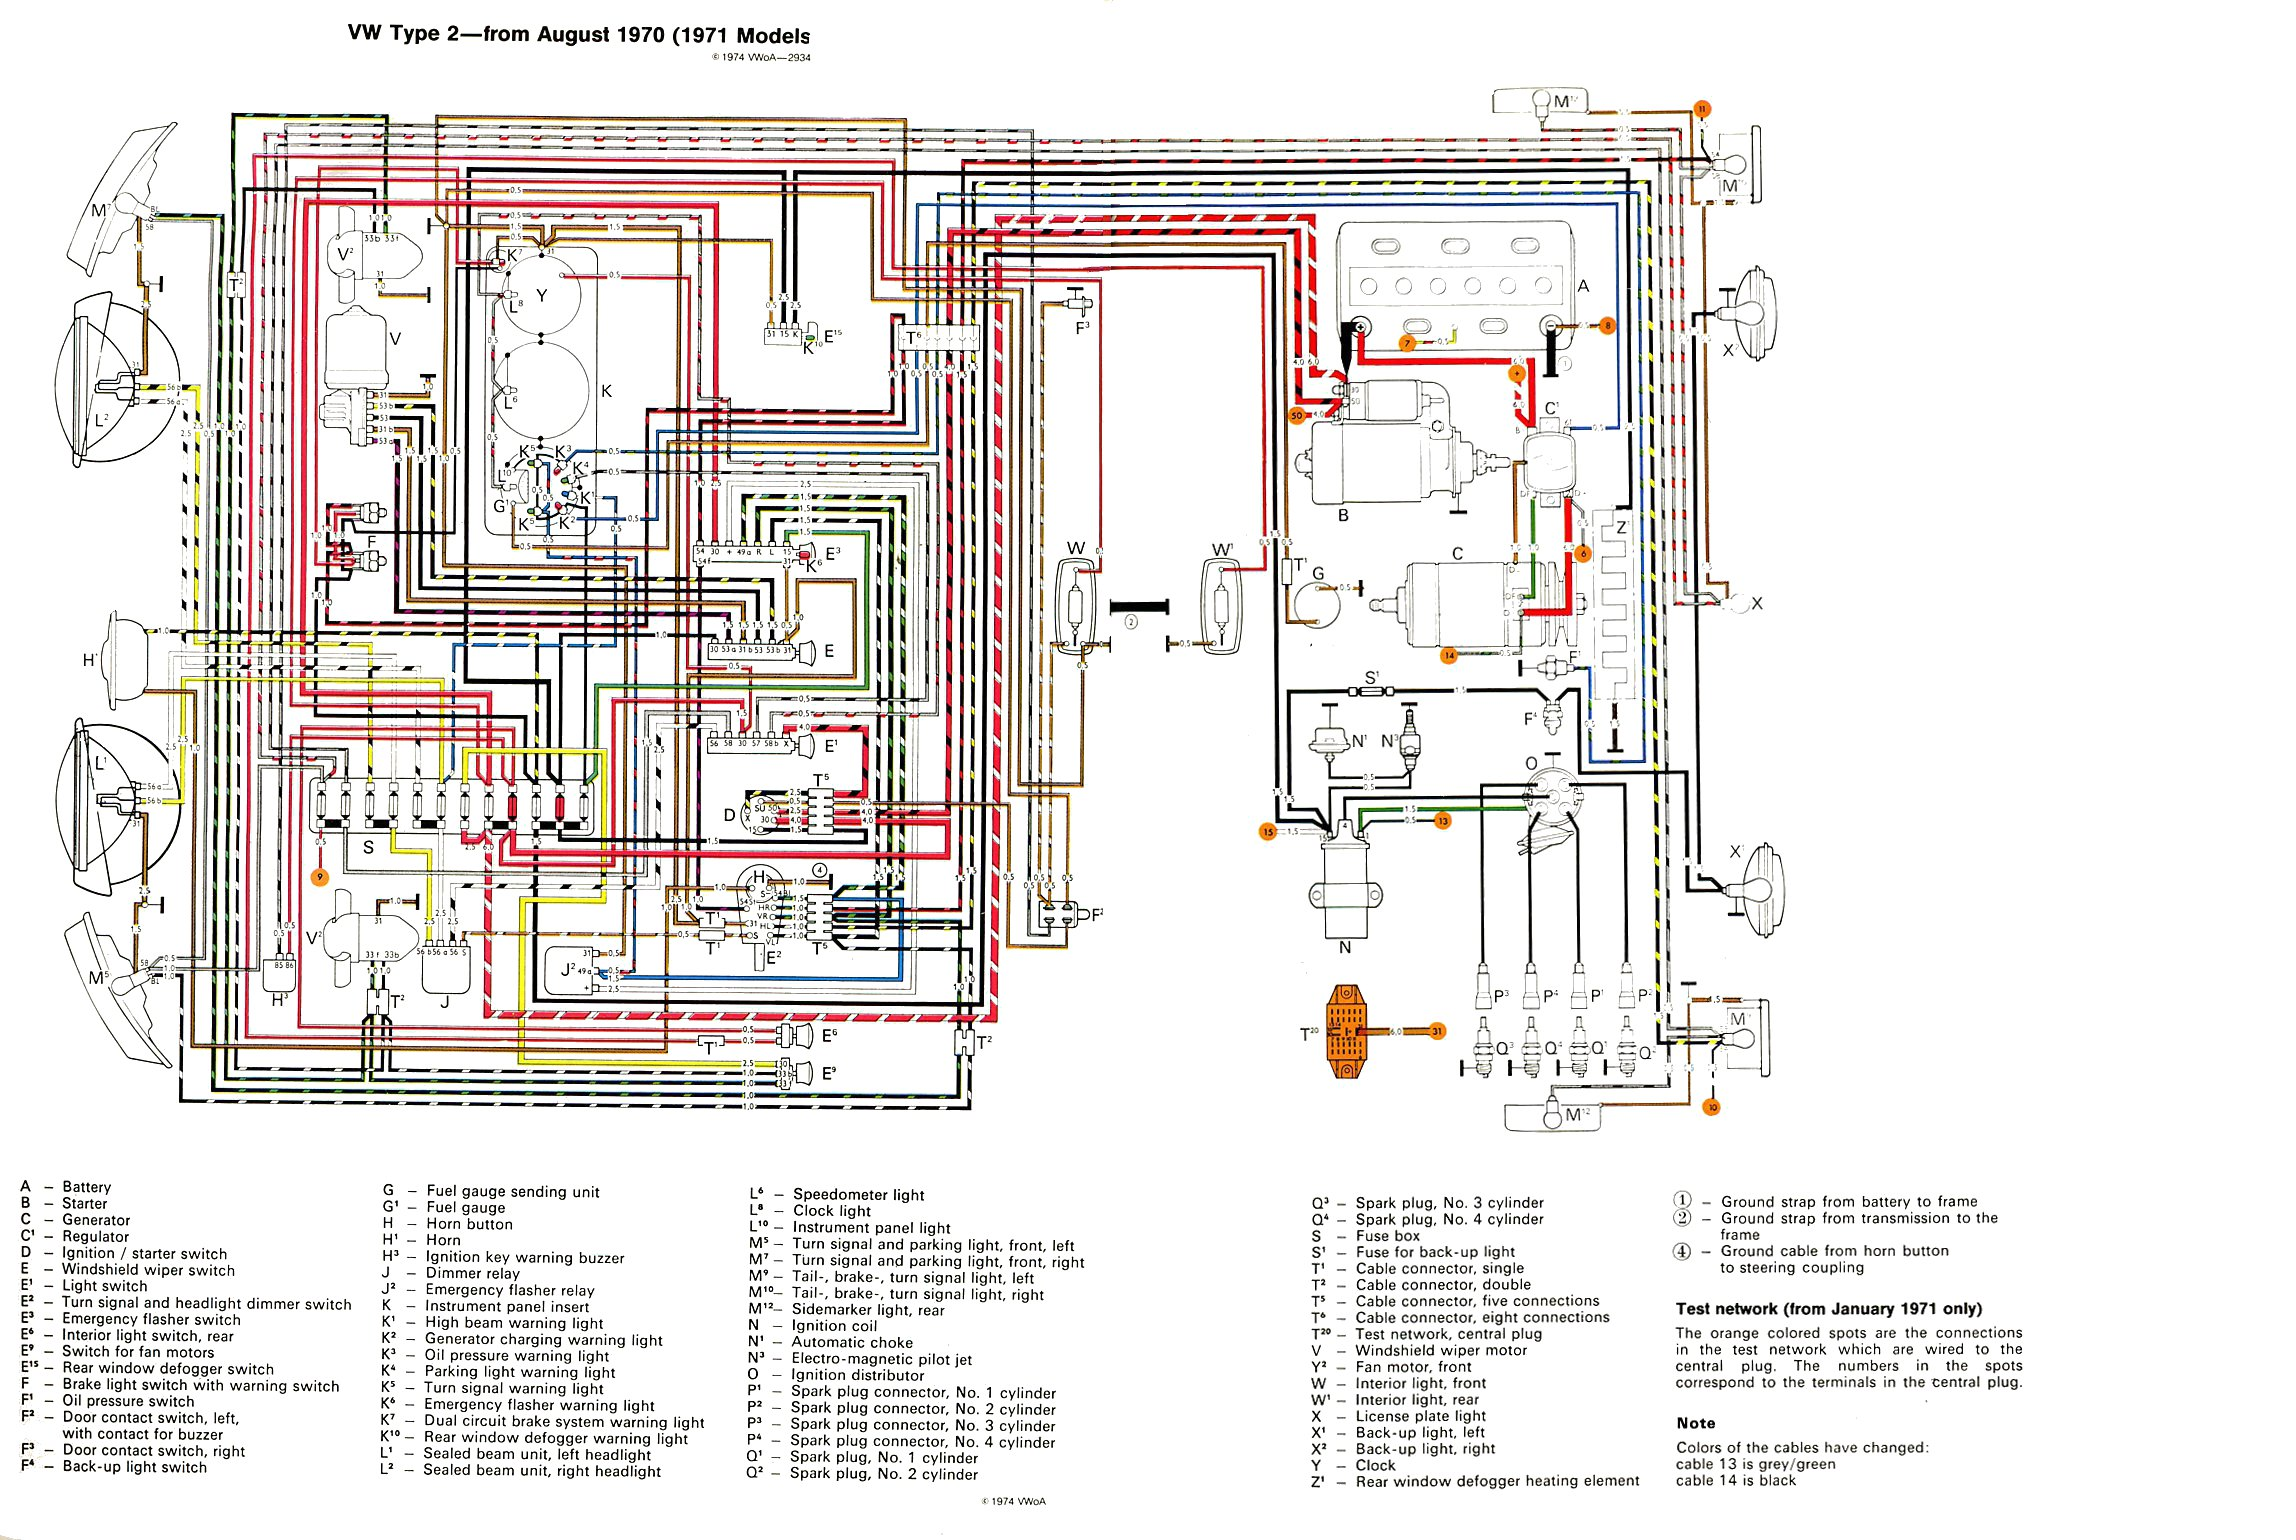 baybus_71 thesamba com type 2 wiring diagrams fuse box wiring diagram at gsmx.co